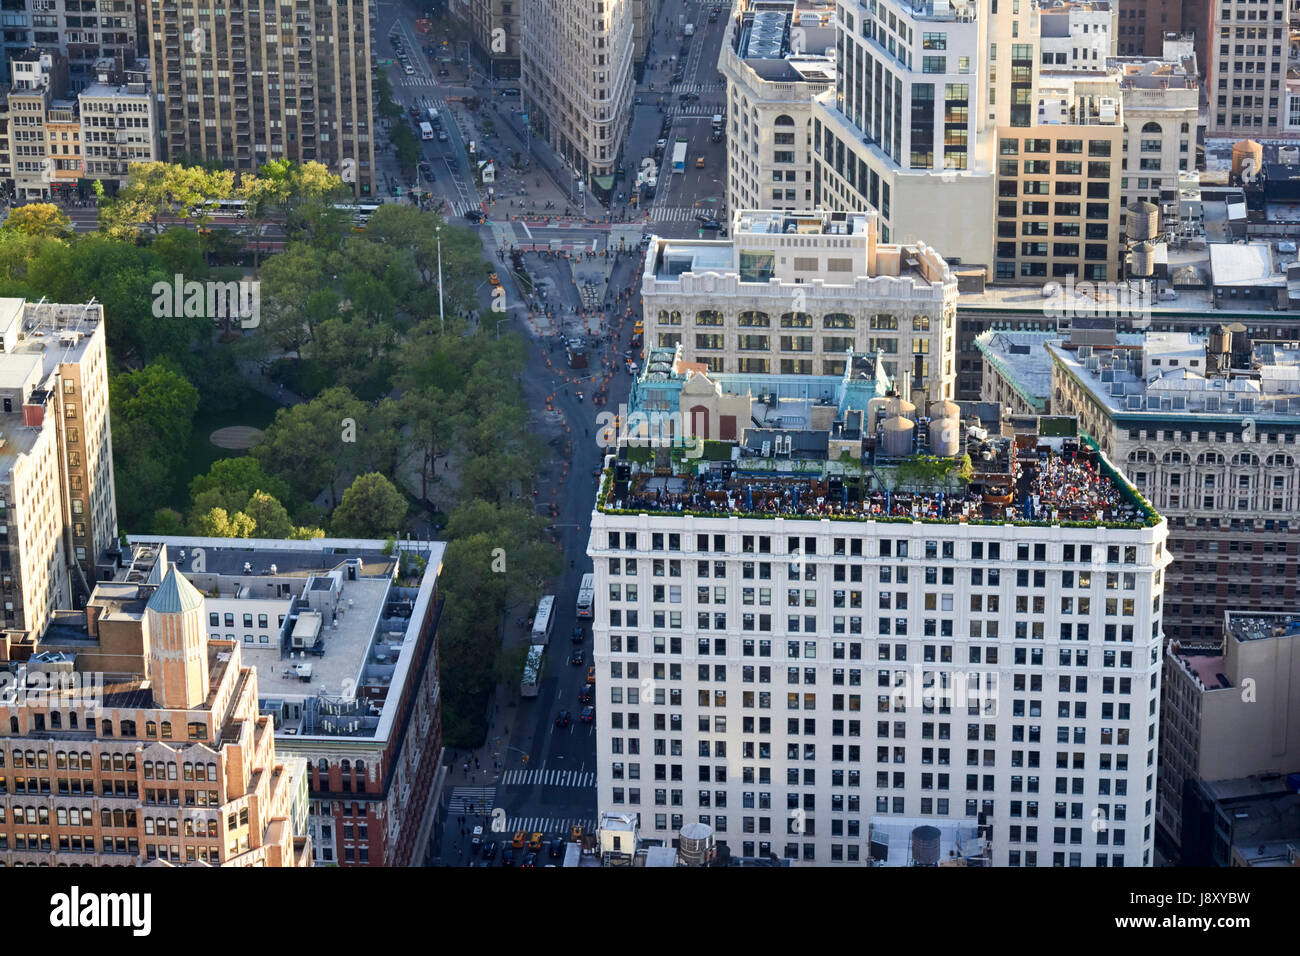 230 fifth rooftop bar on top of the victoria building with view of madison square park downtown manhattan New York - Stock Image